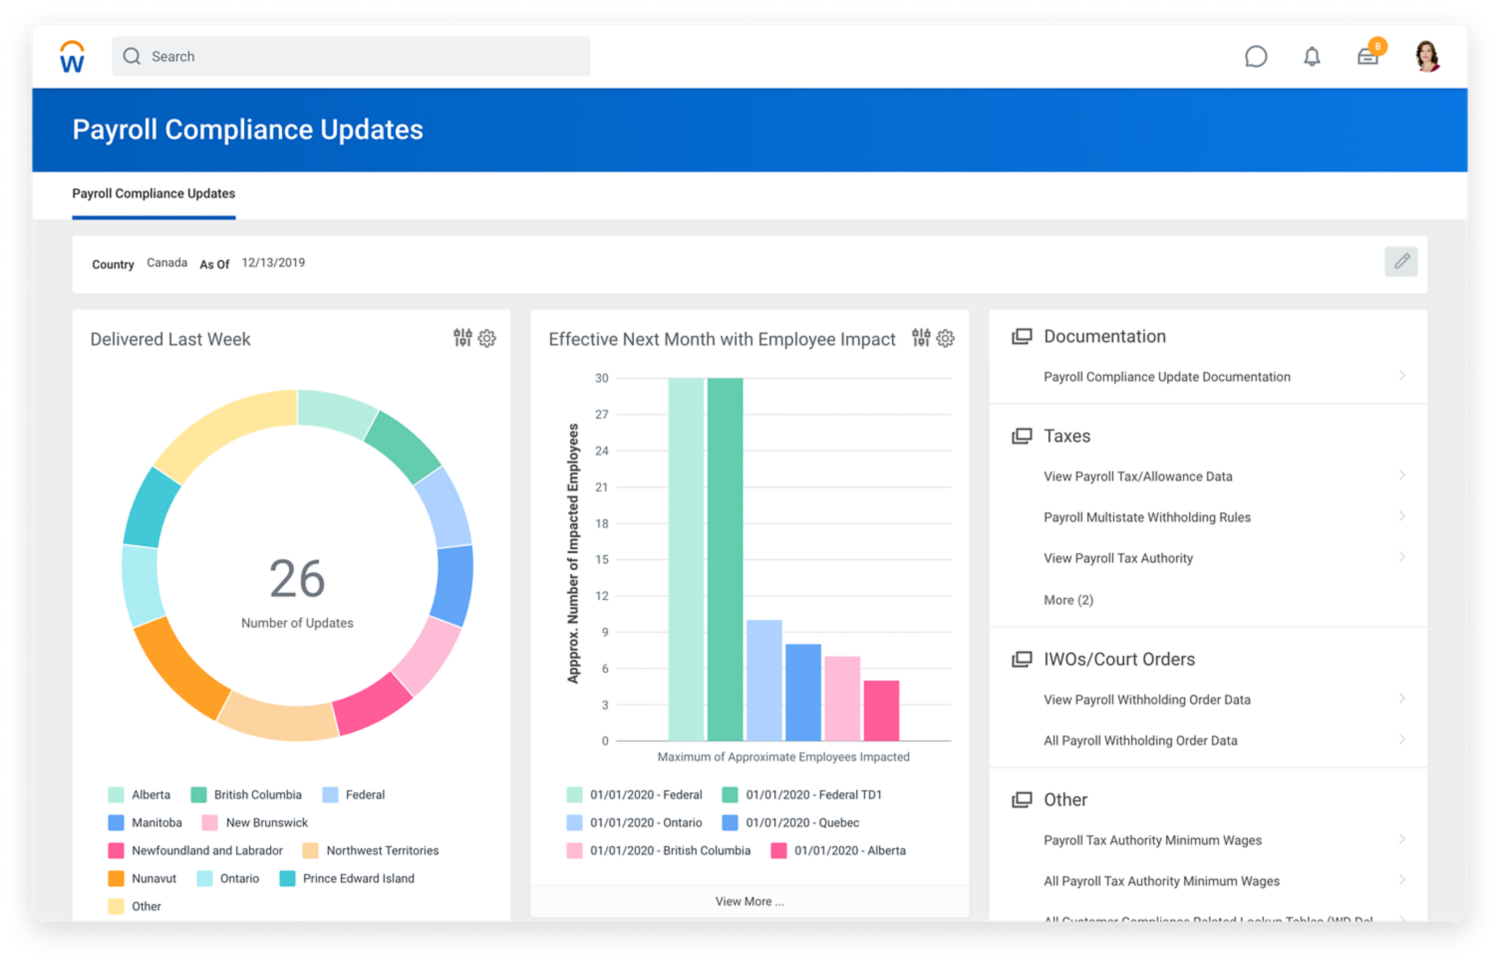 Payroll compliance update dashboard for Canada showing updates delivered last week and the number of employees impacted by updates next month.